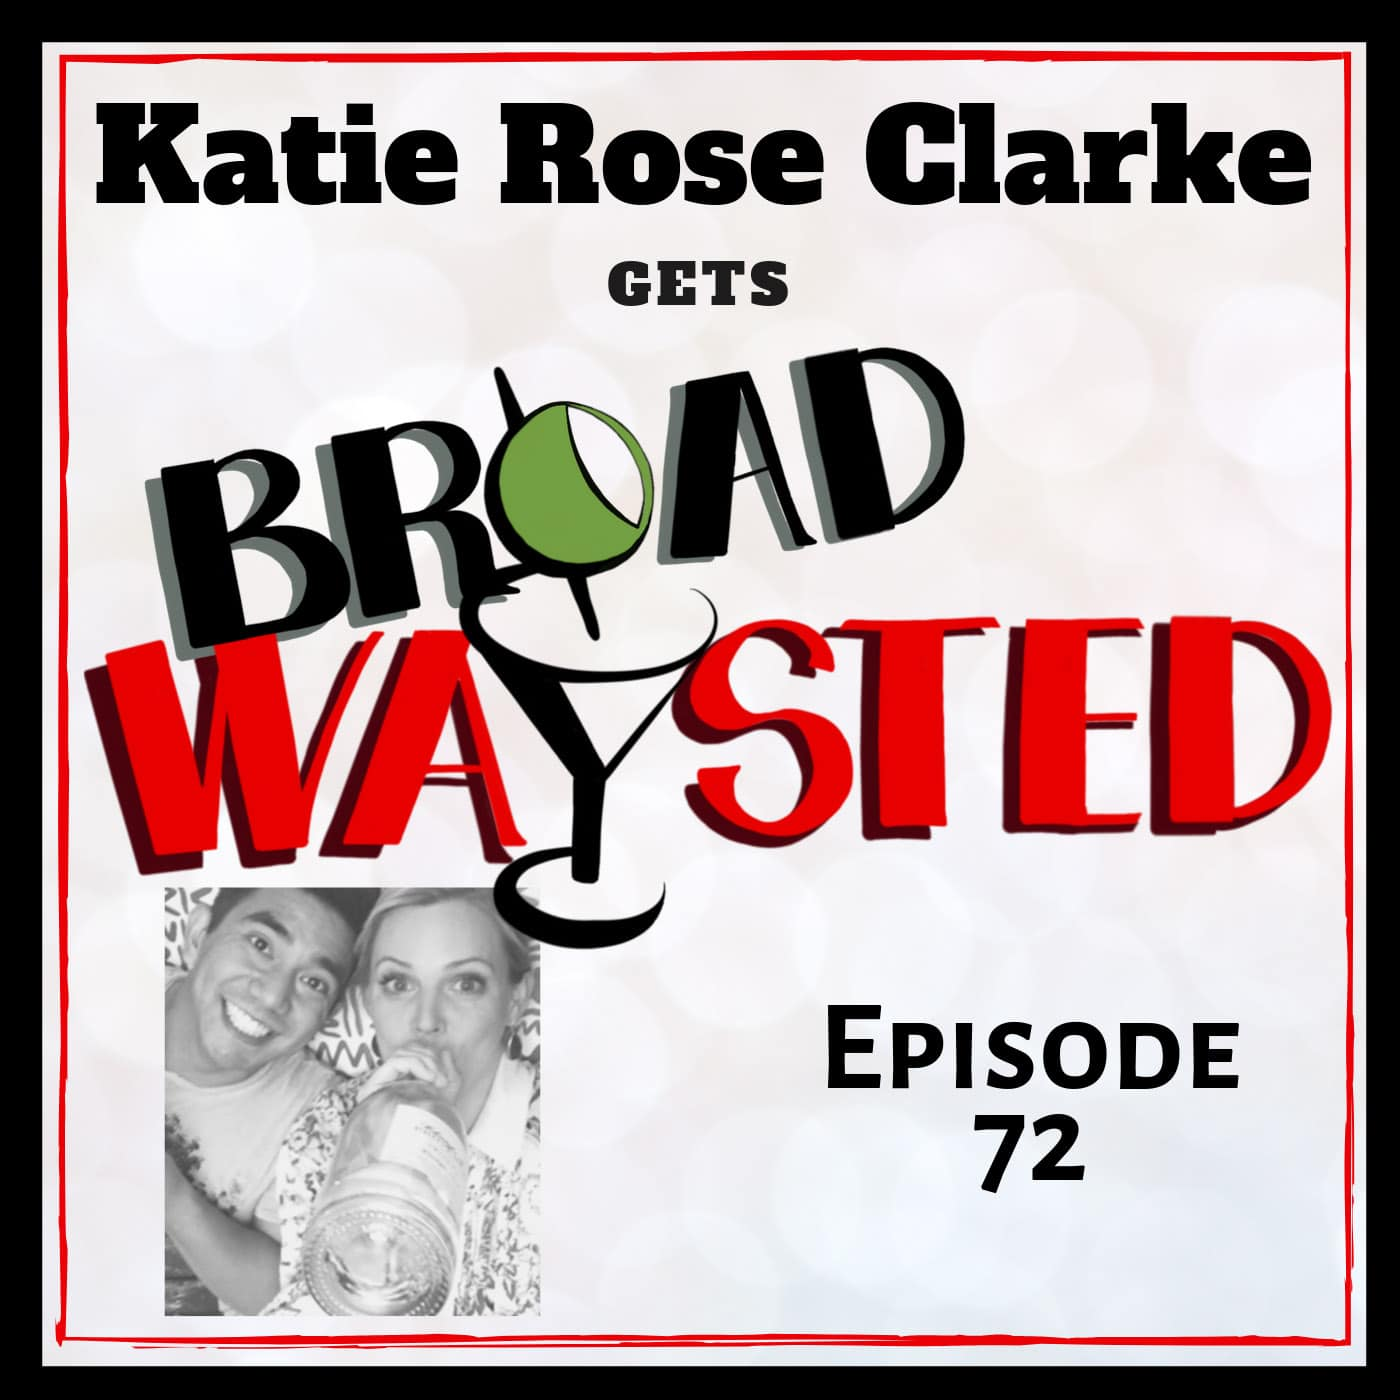 Broadwaysted Ep 72 Katie Rose Clarke